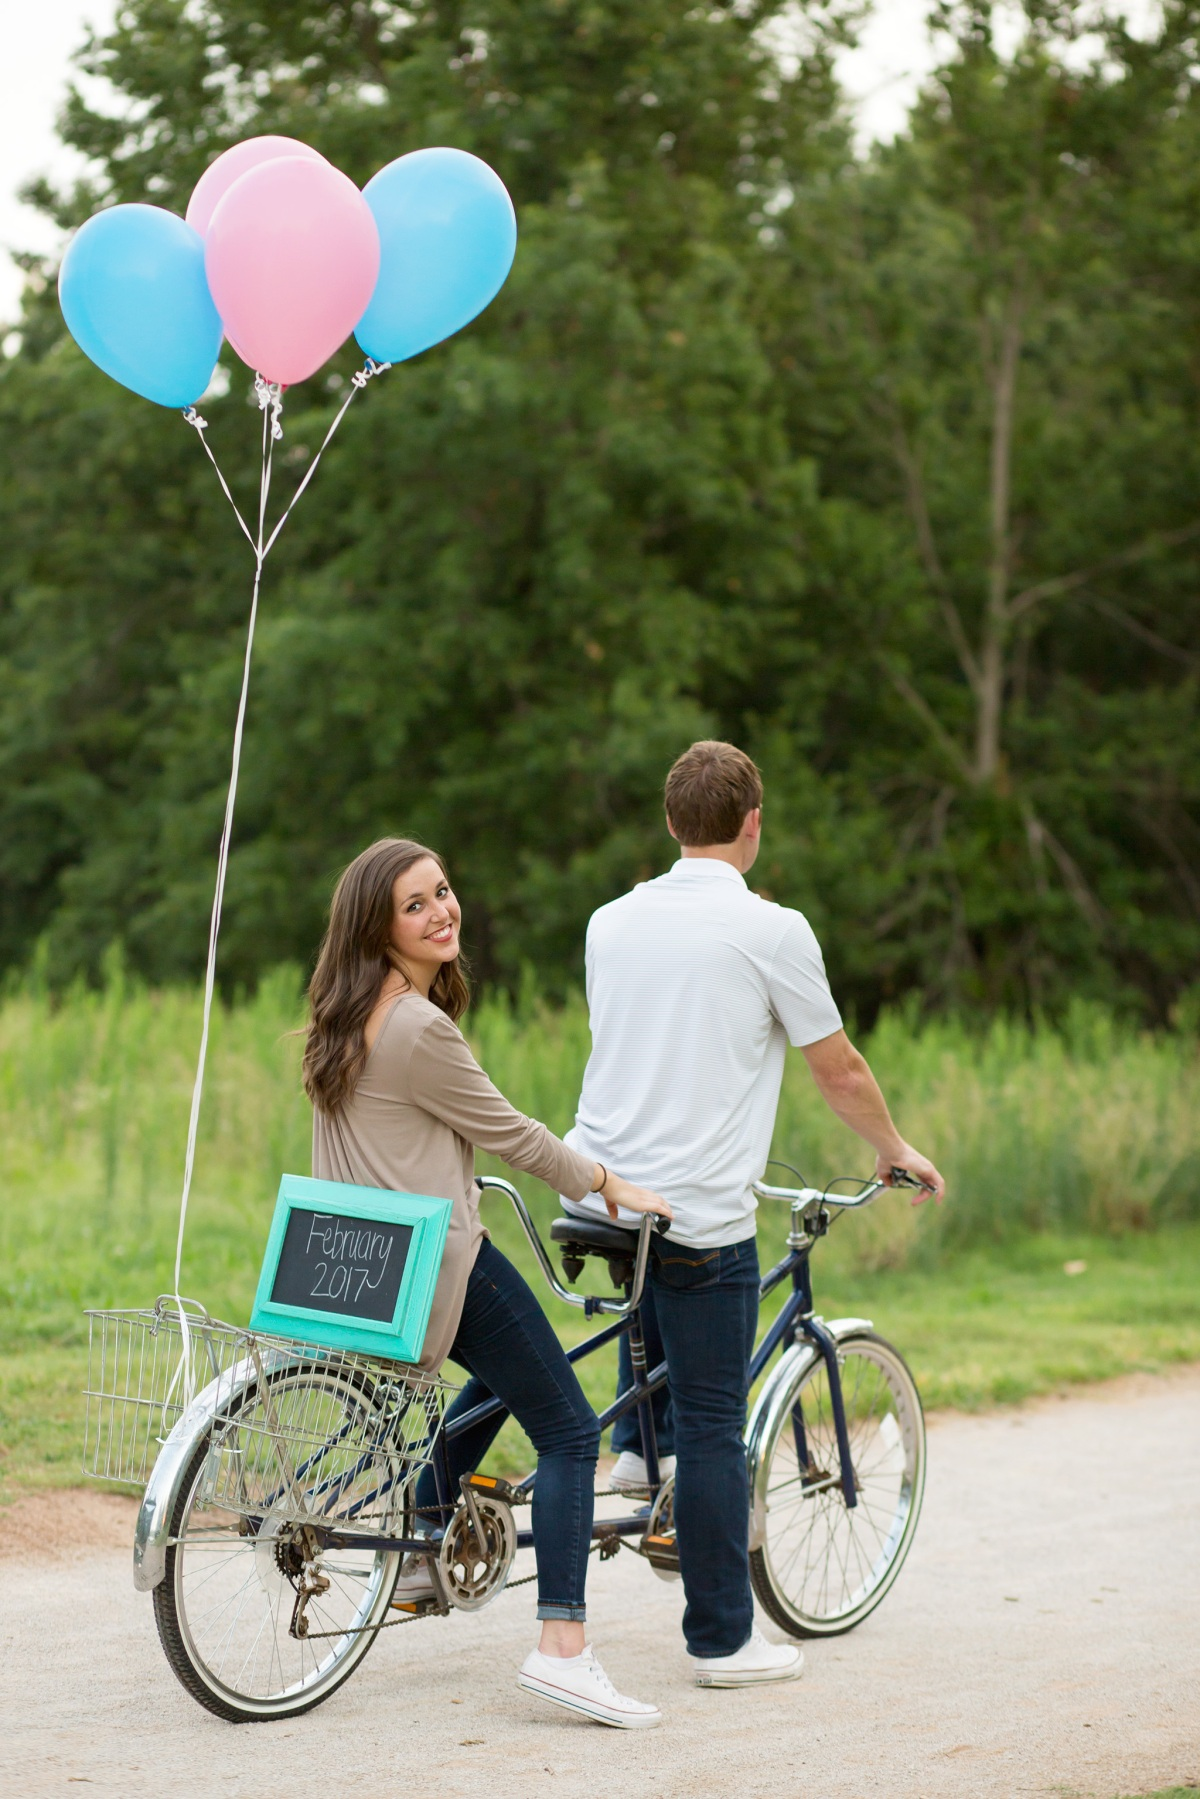 Couple riding bike with balloons at Baby Announcement Photoshoot in Stillwater, Oklahoma July 2016